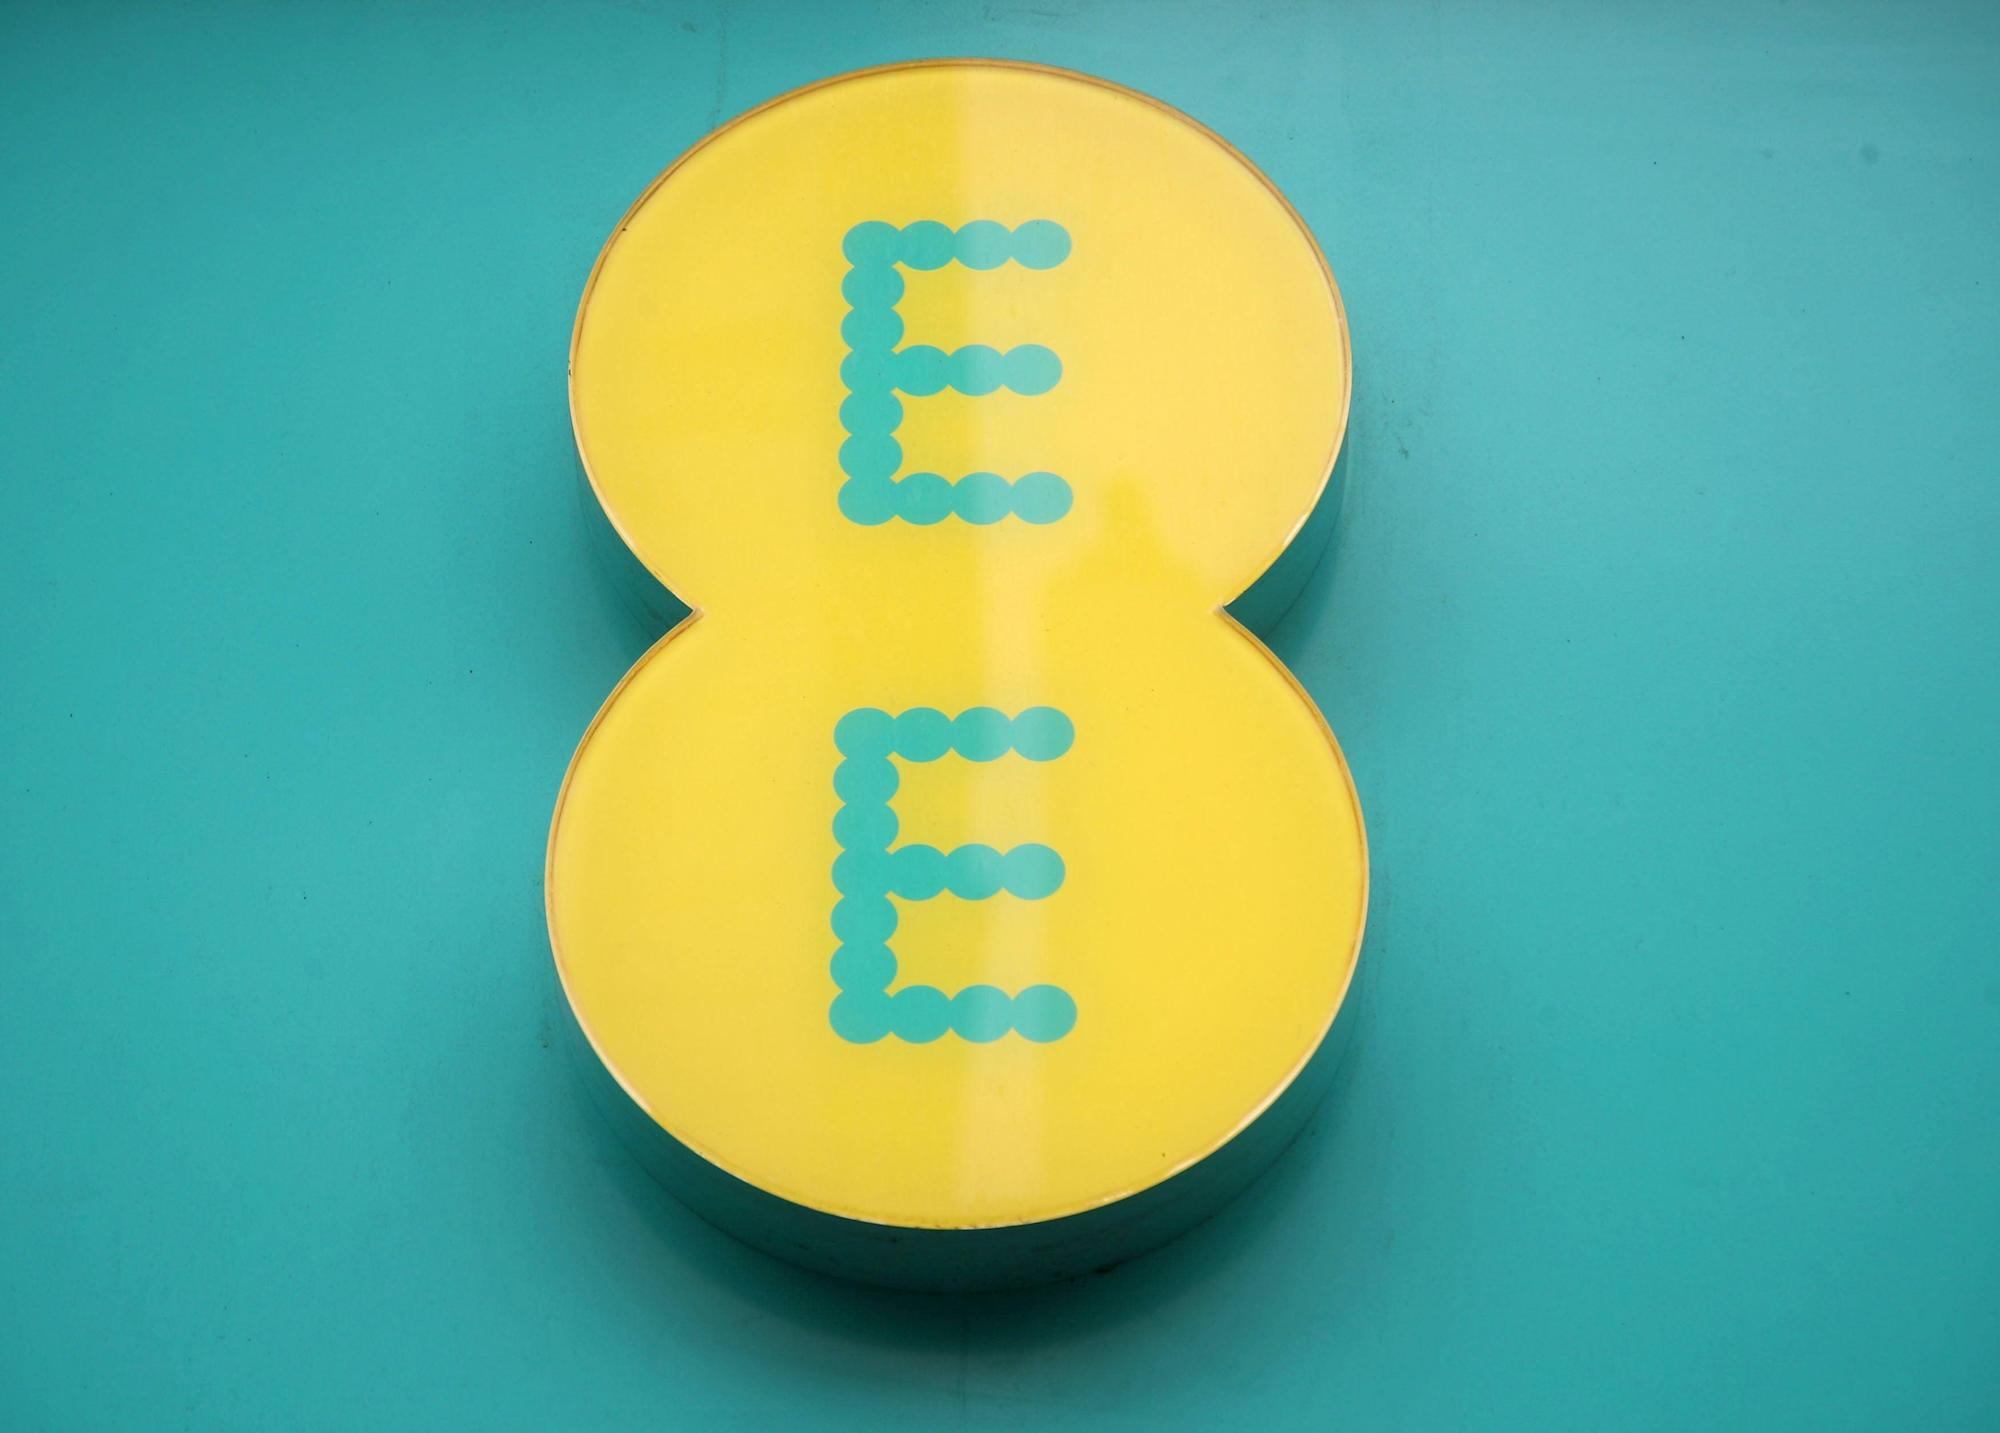 EE to remove mobile data charges for Euro 2020 final